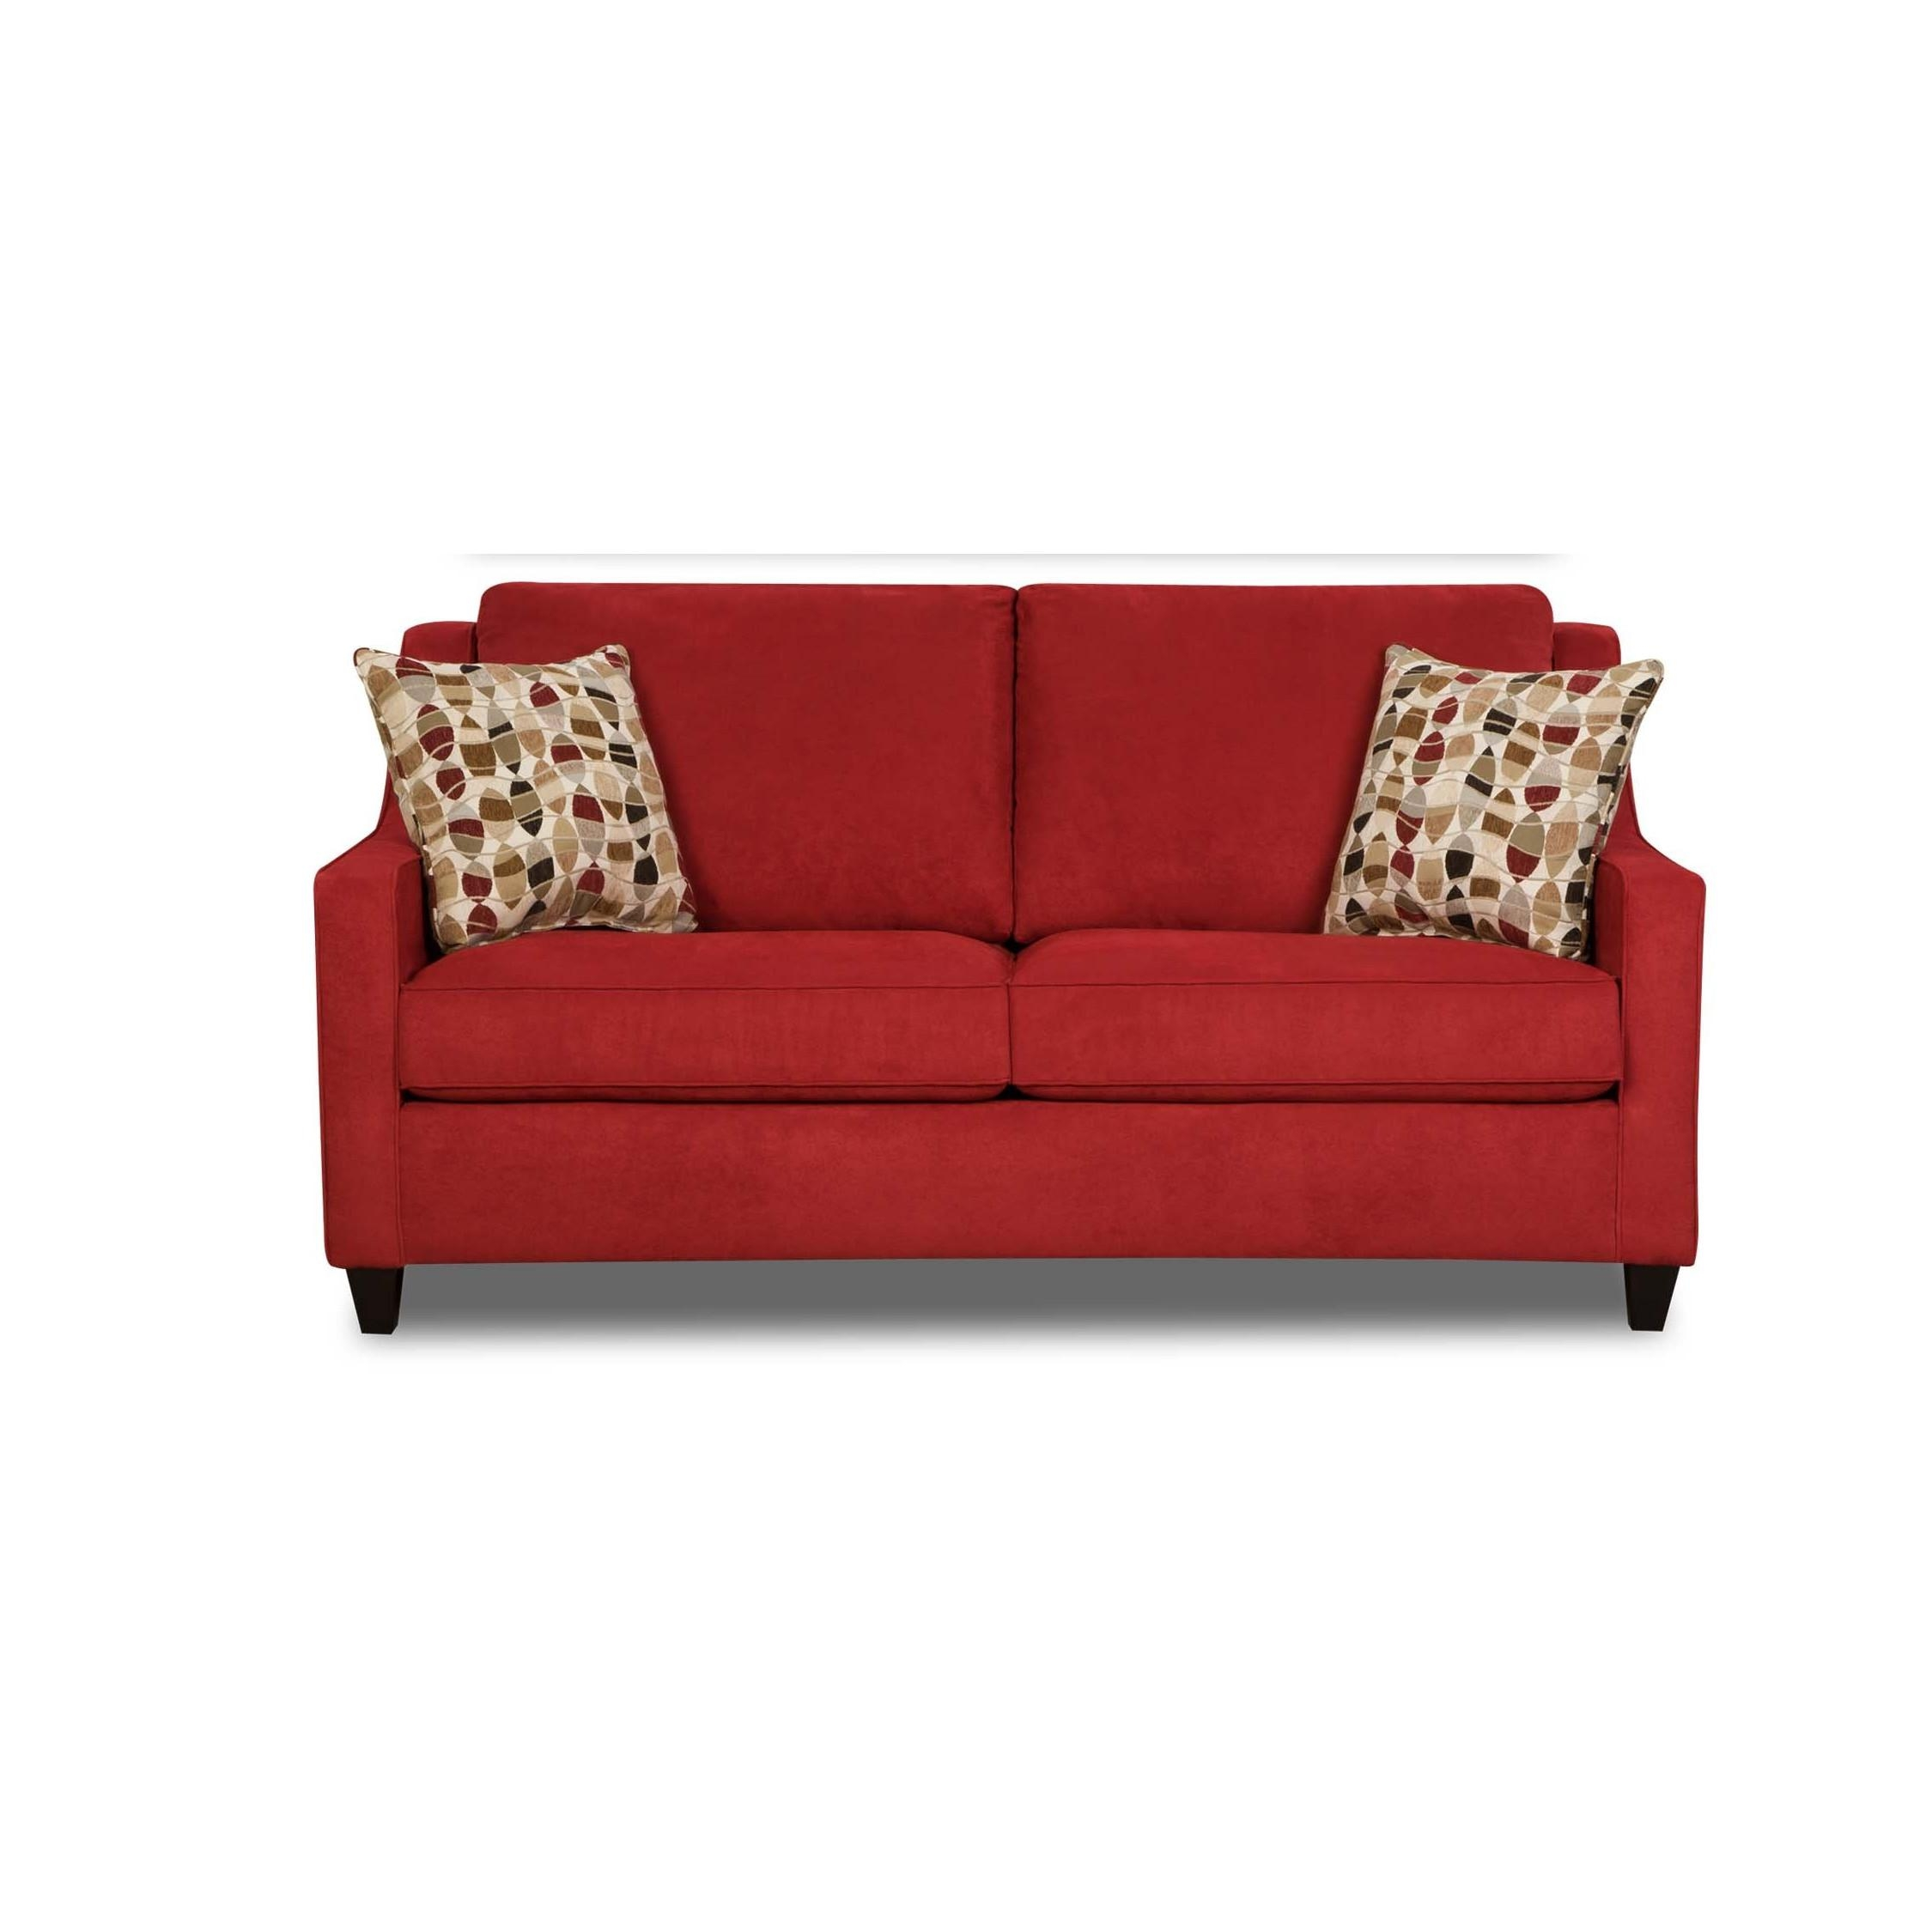 Furniture: Using Comfy Simmons Sleeper Sofa For Home Furniture For Simmons Sleeper Sofas (View 5 of 20)